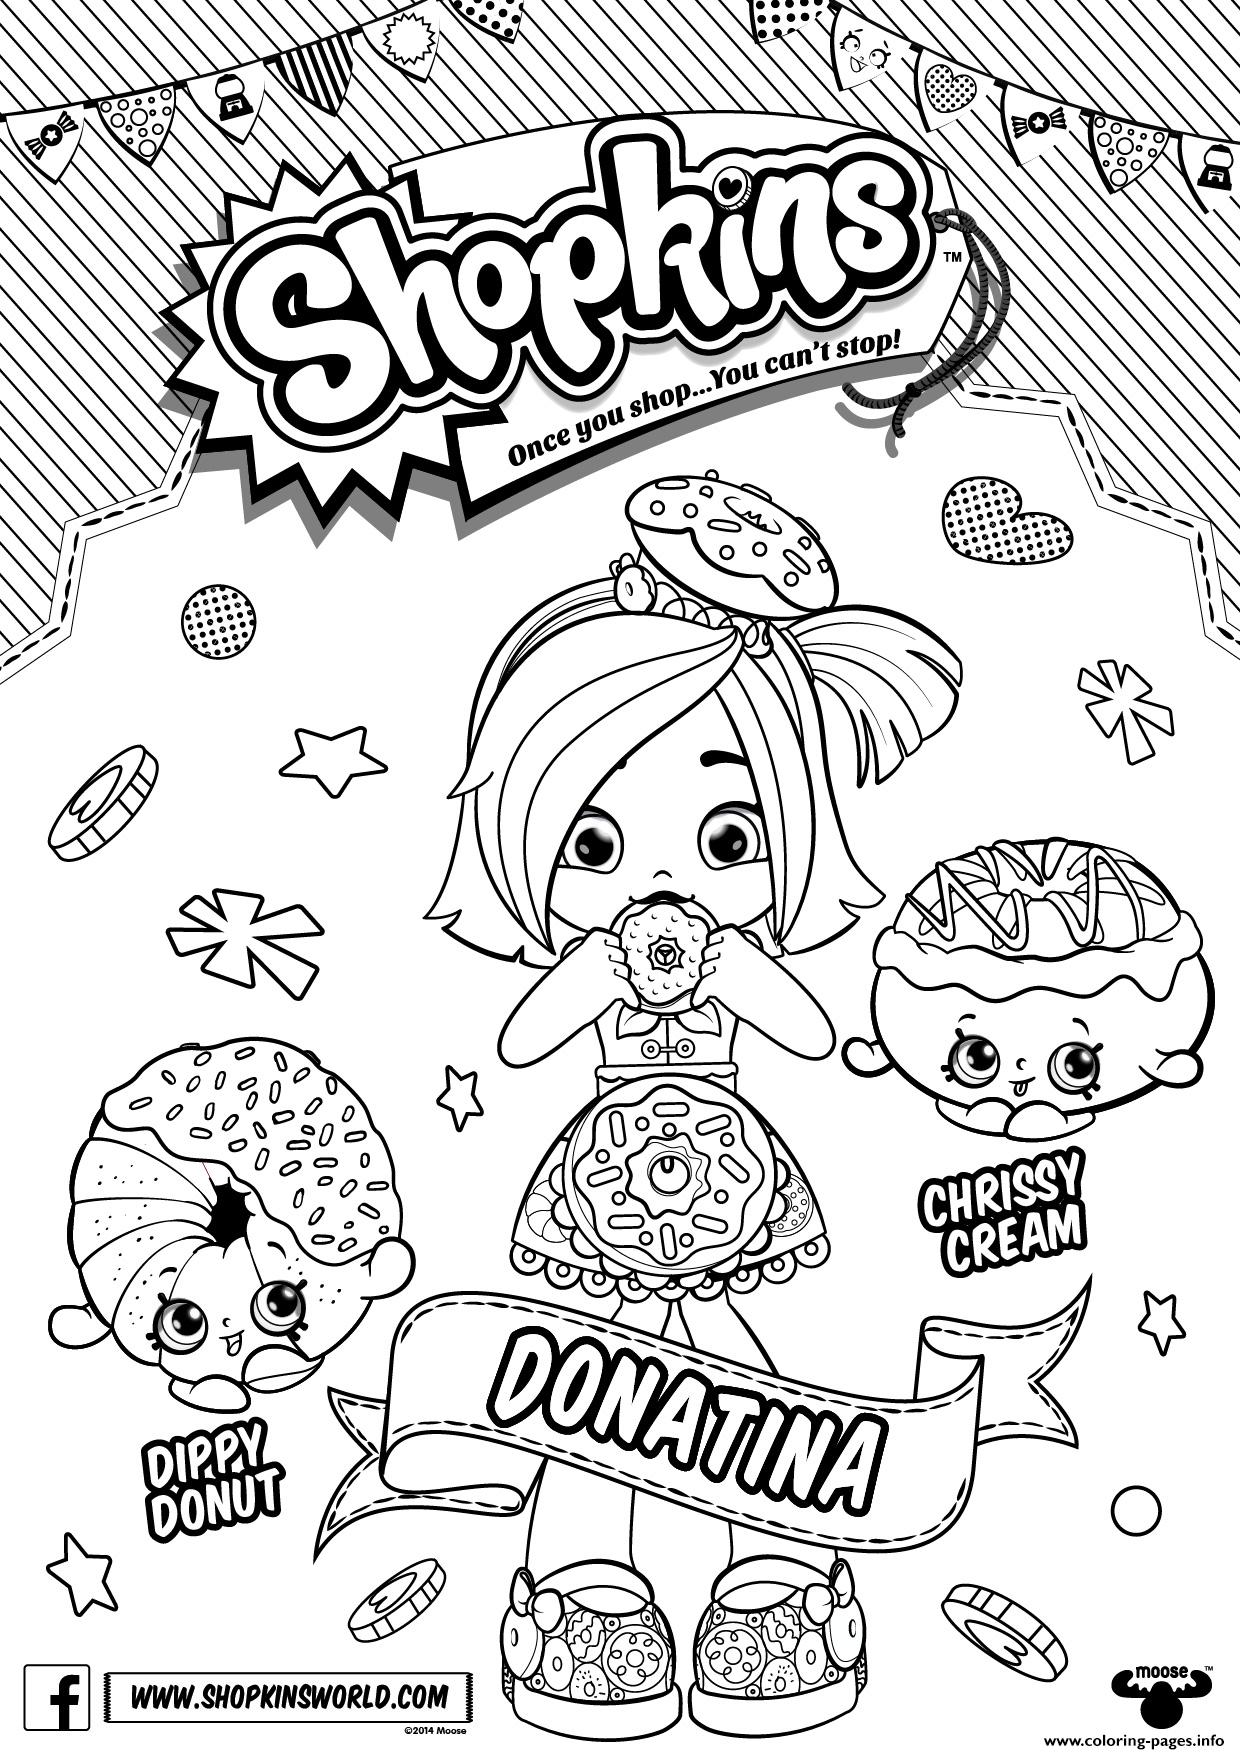 Donatina Shopkins Shoppies Coloring